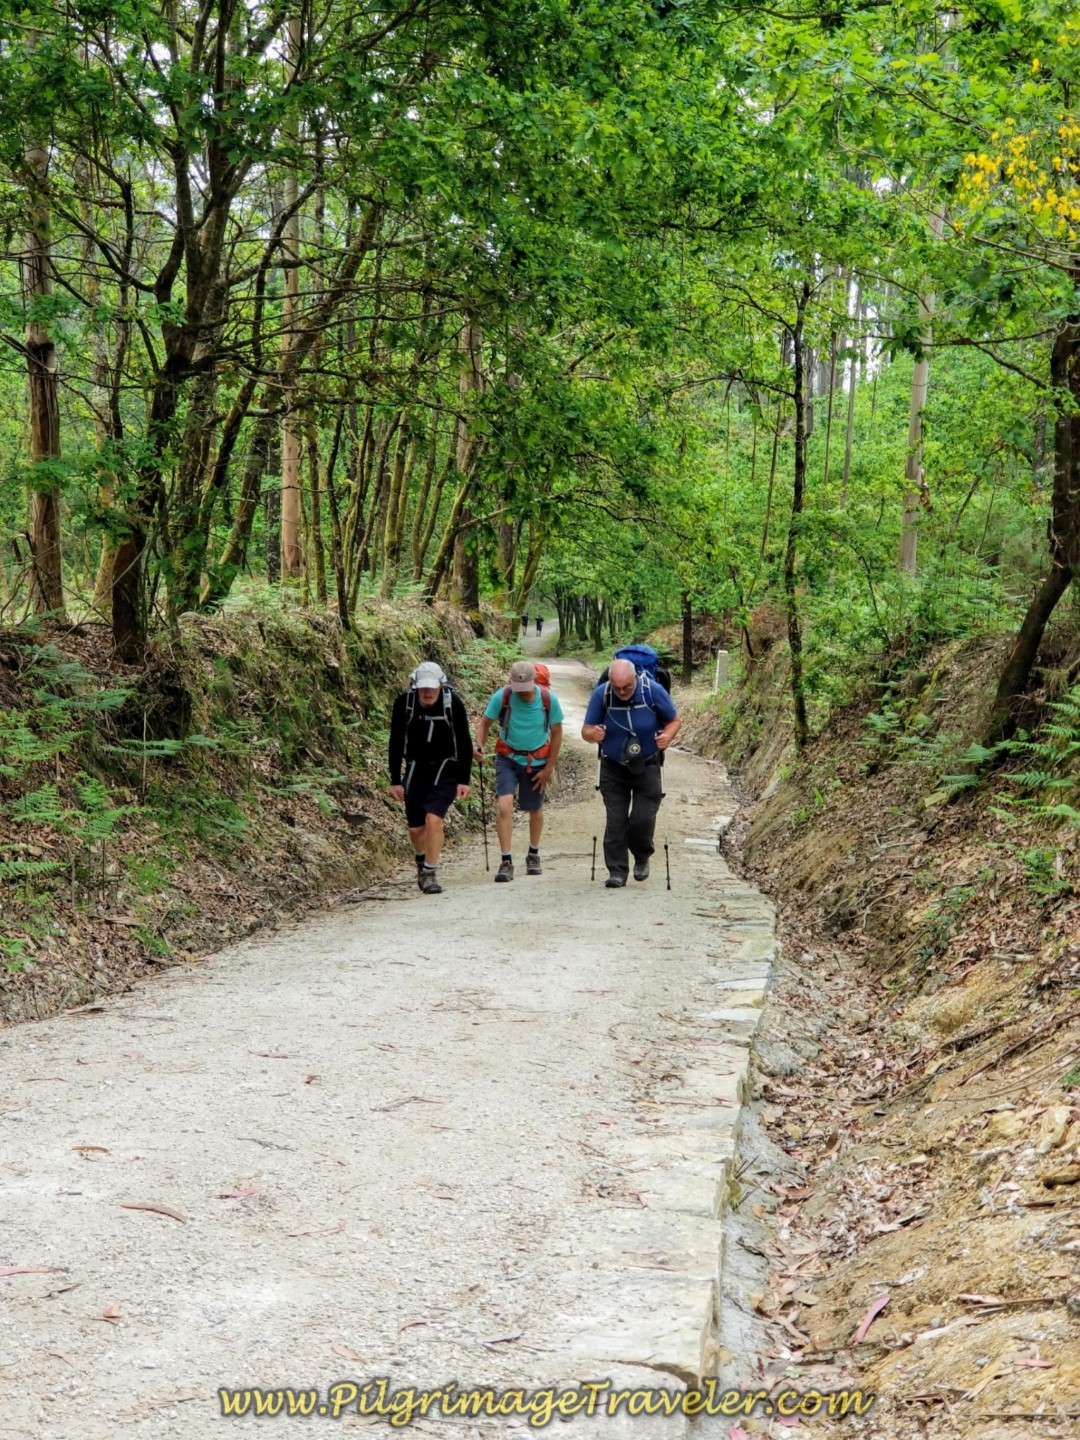 Gentlemen Climbing on Third Trail System of the Camino Fisterra on day one.